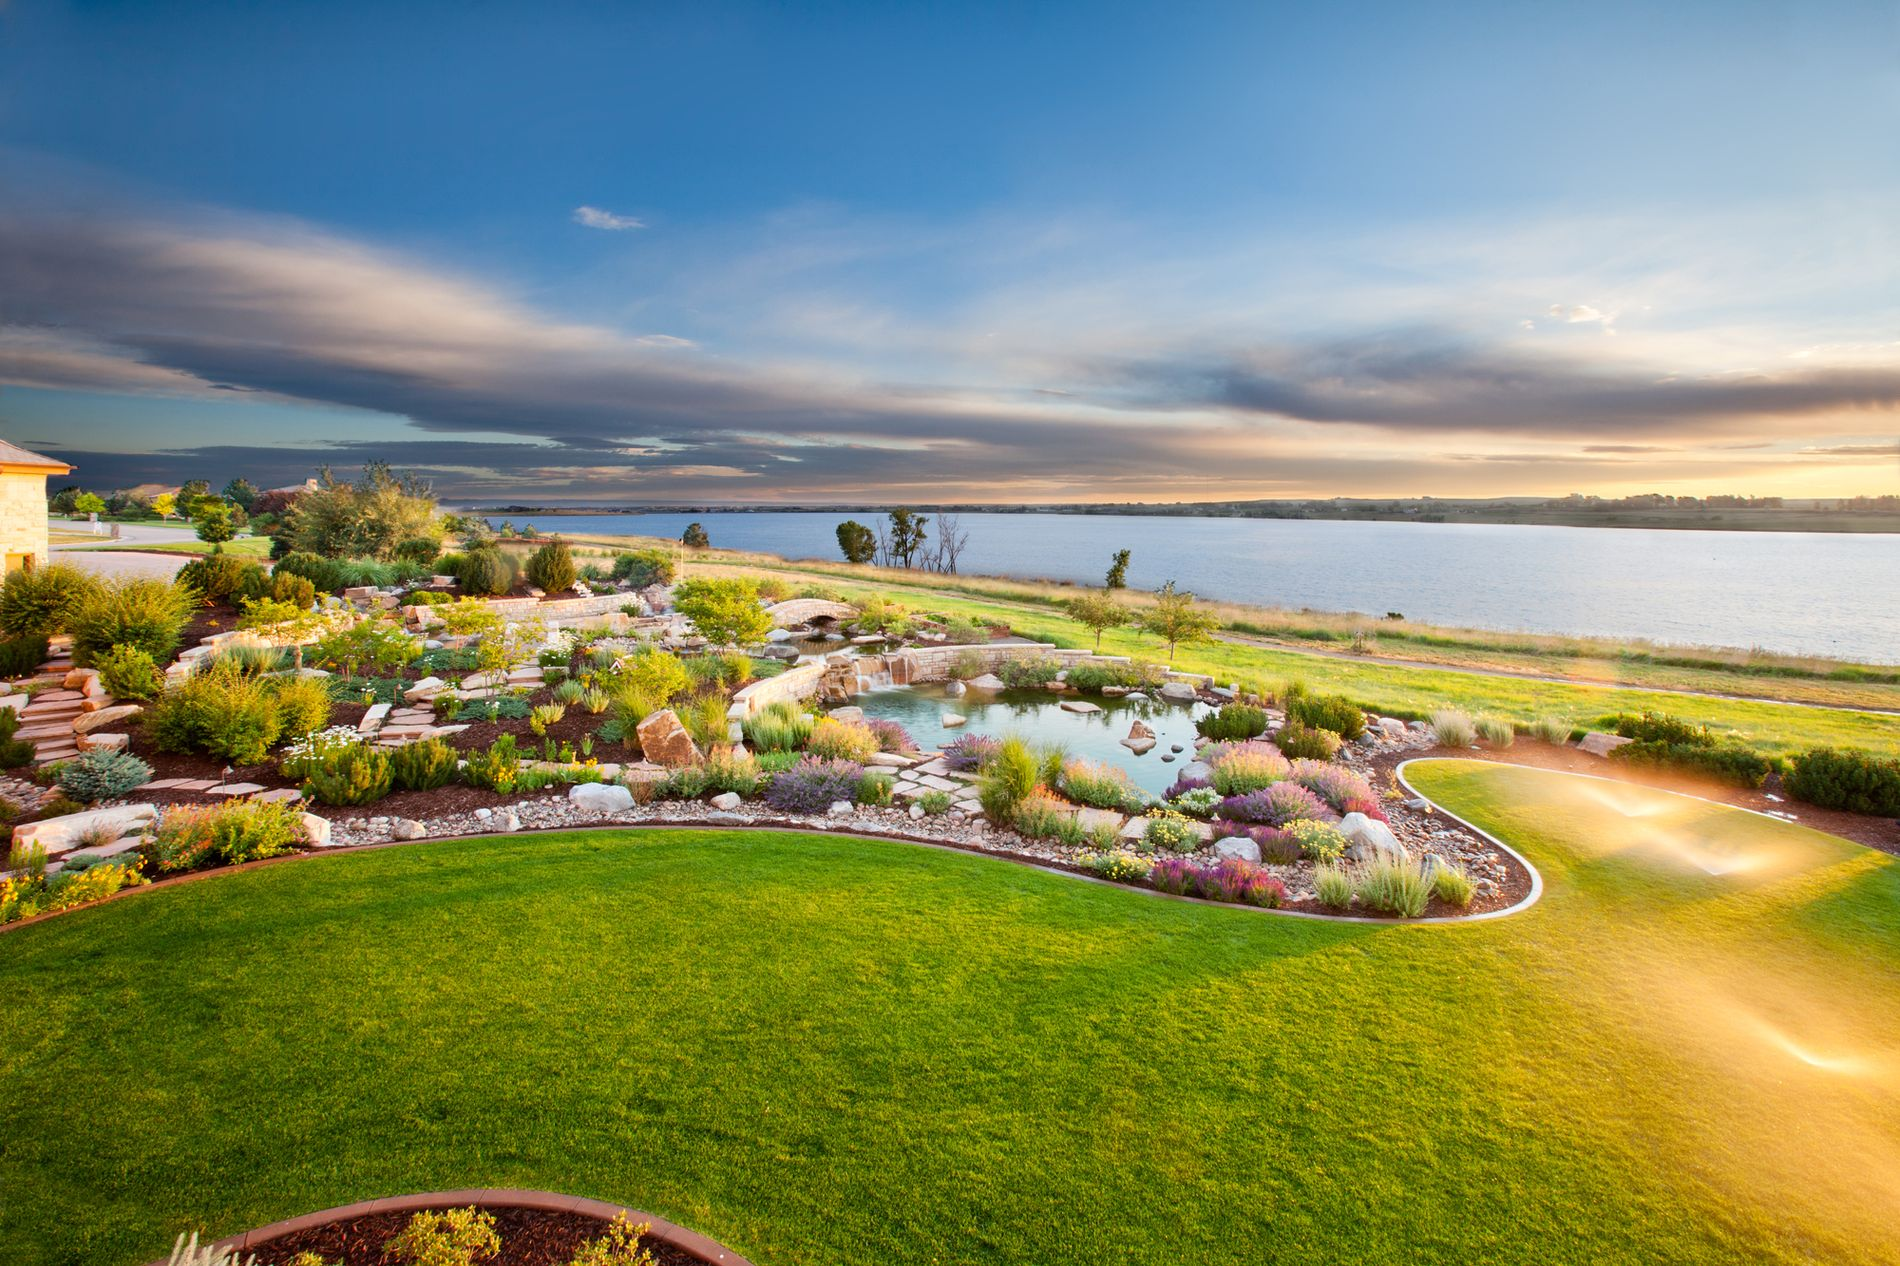 Lake Front Estate Landscaping with Water Feature